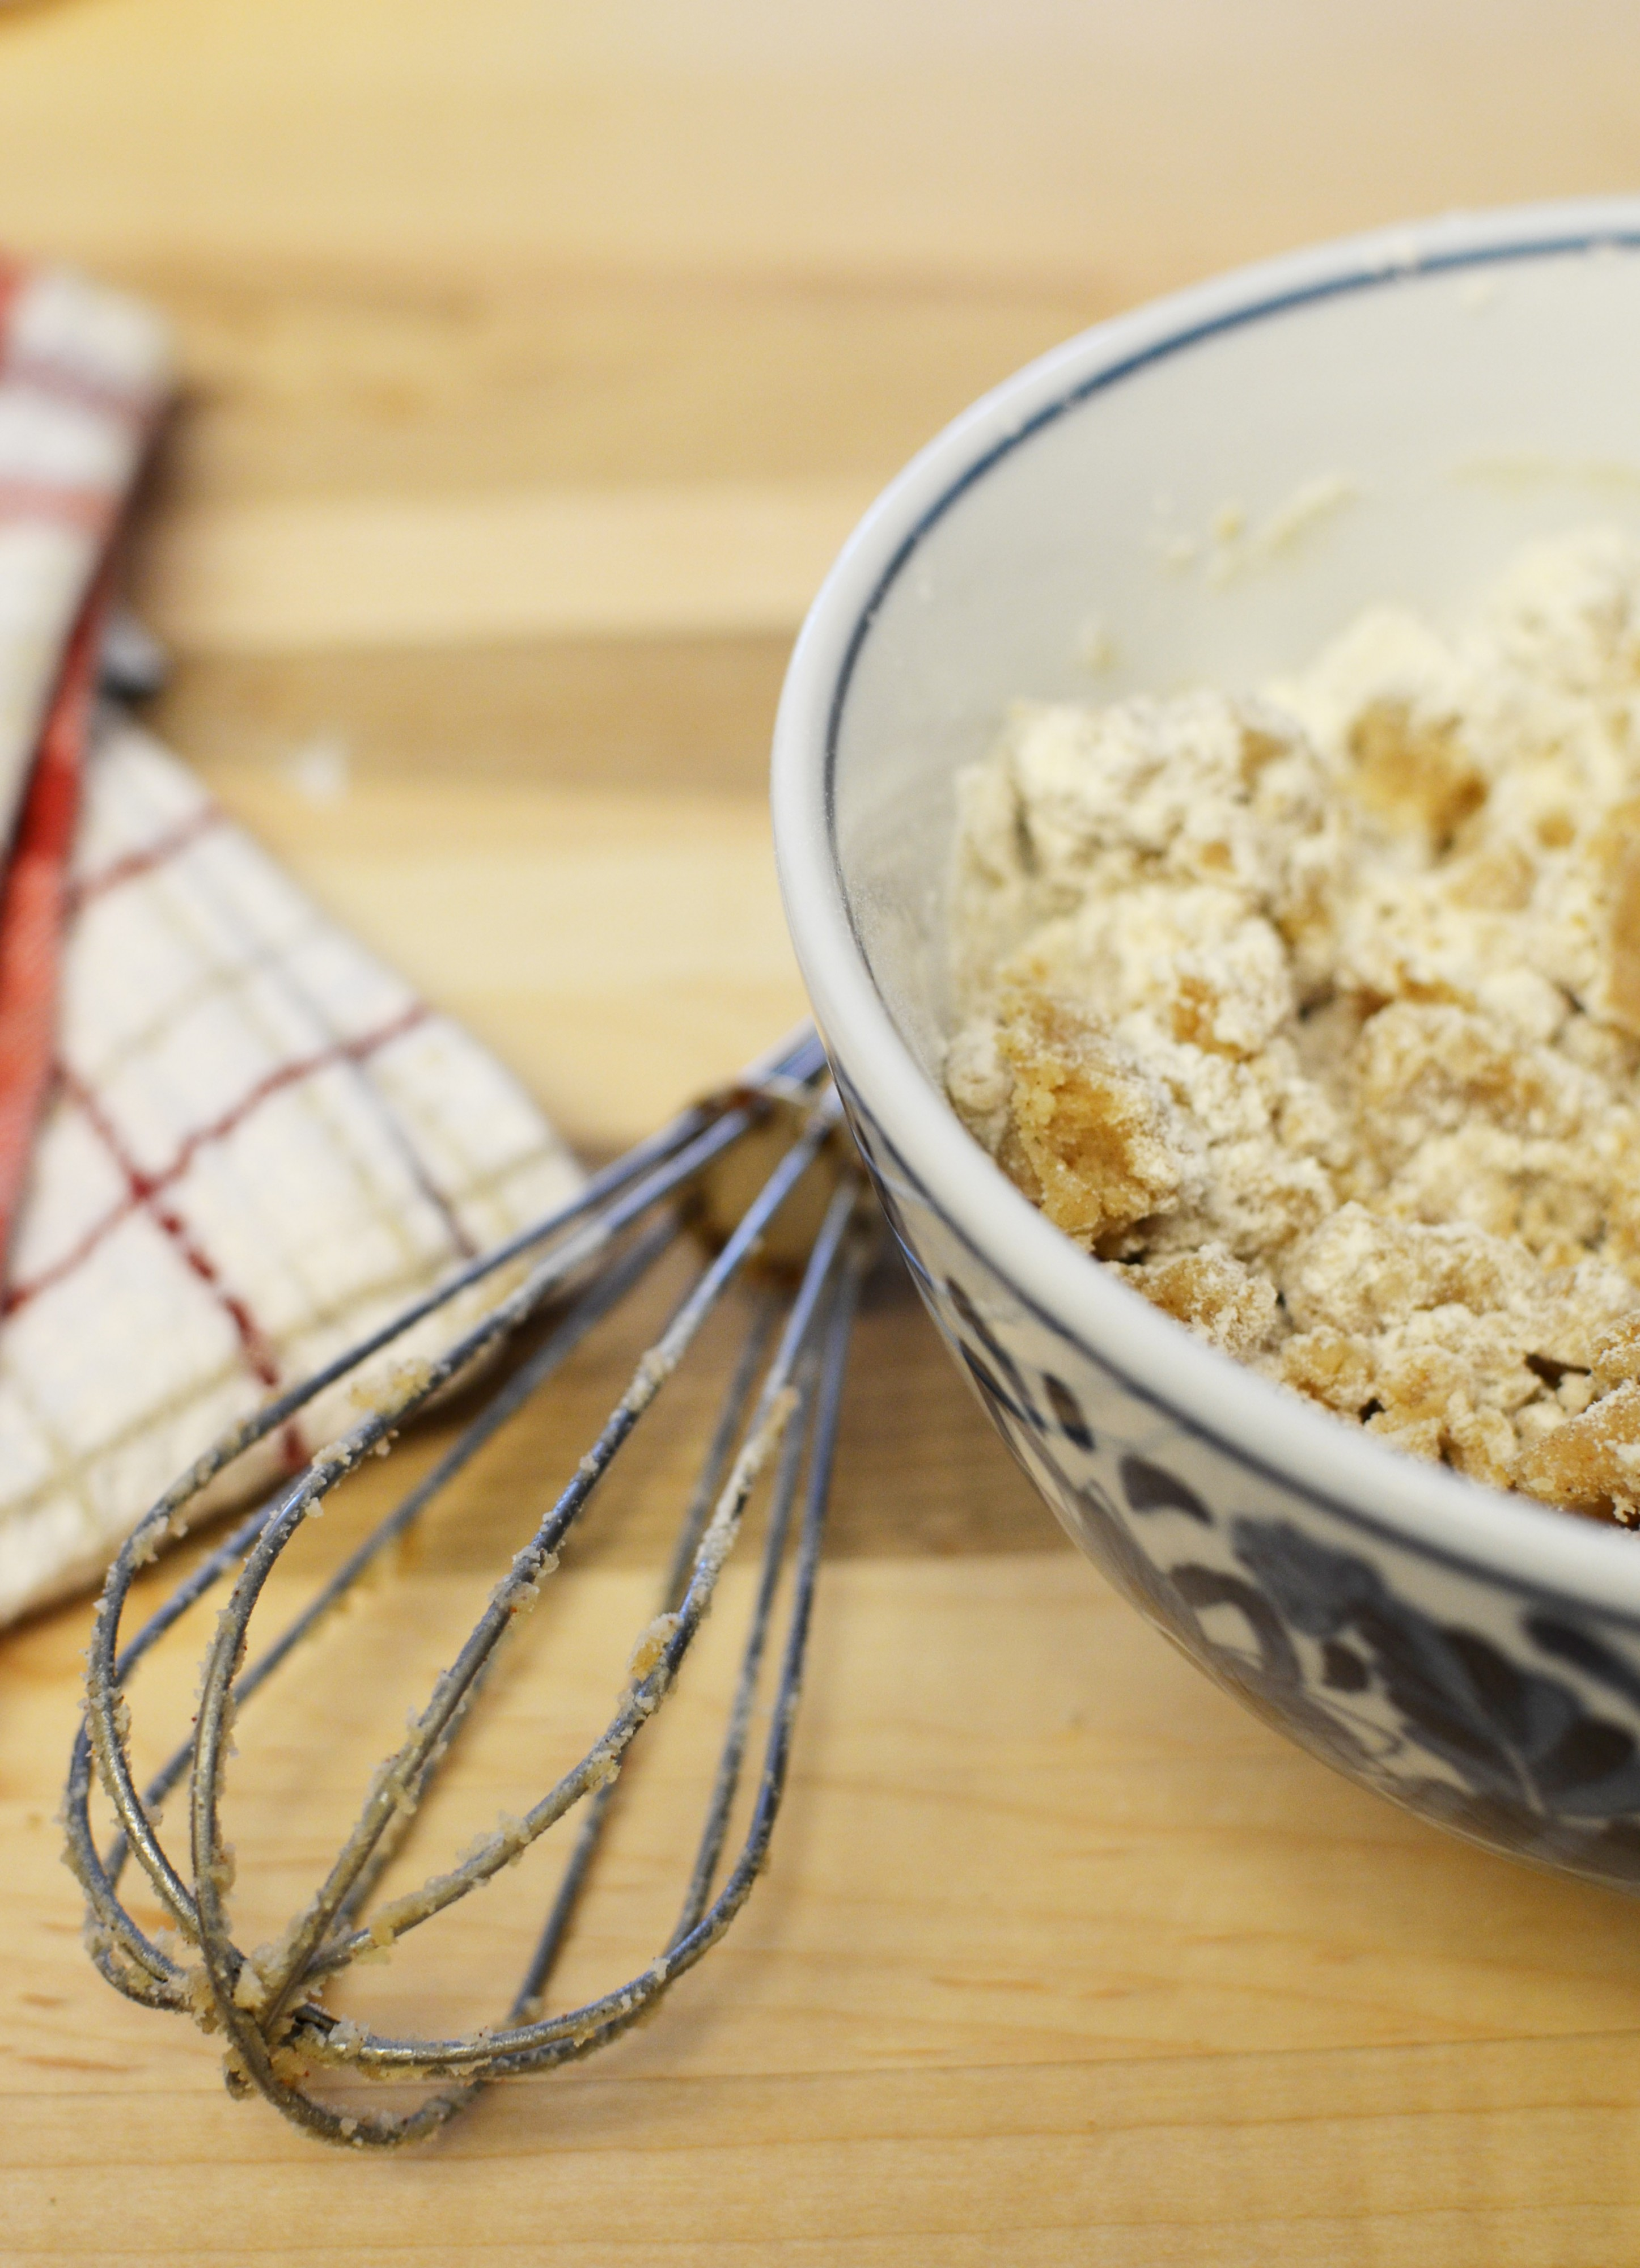 Streusel | Sprig and Flours